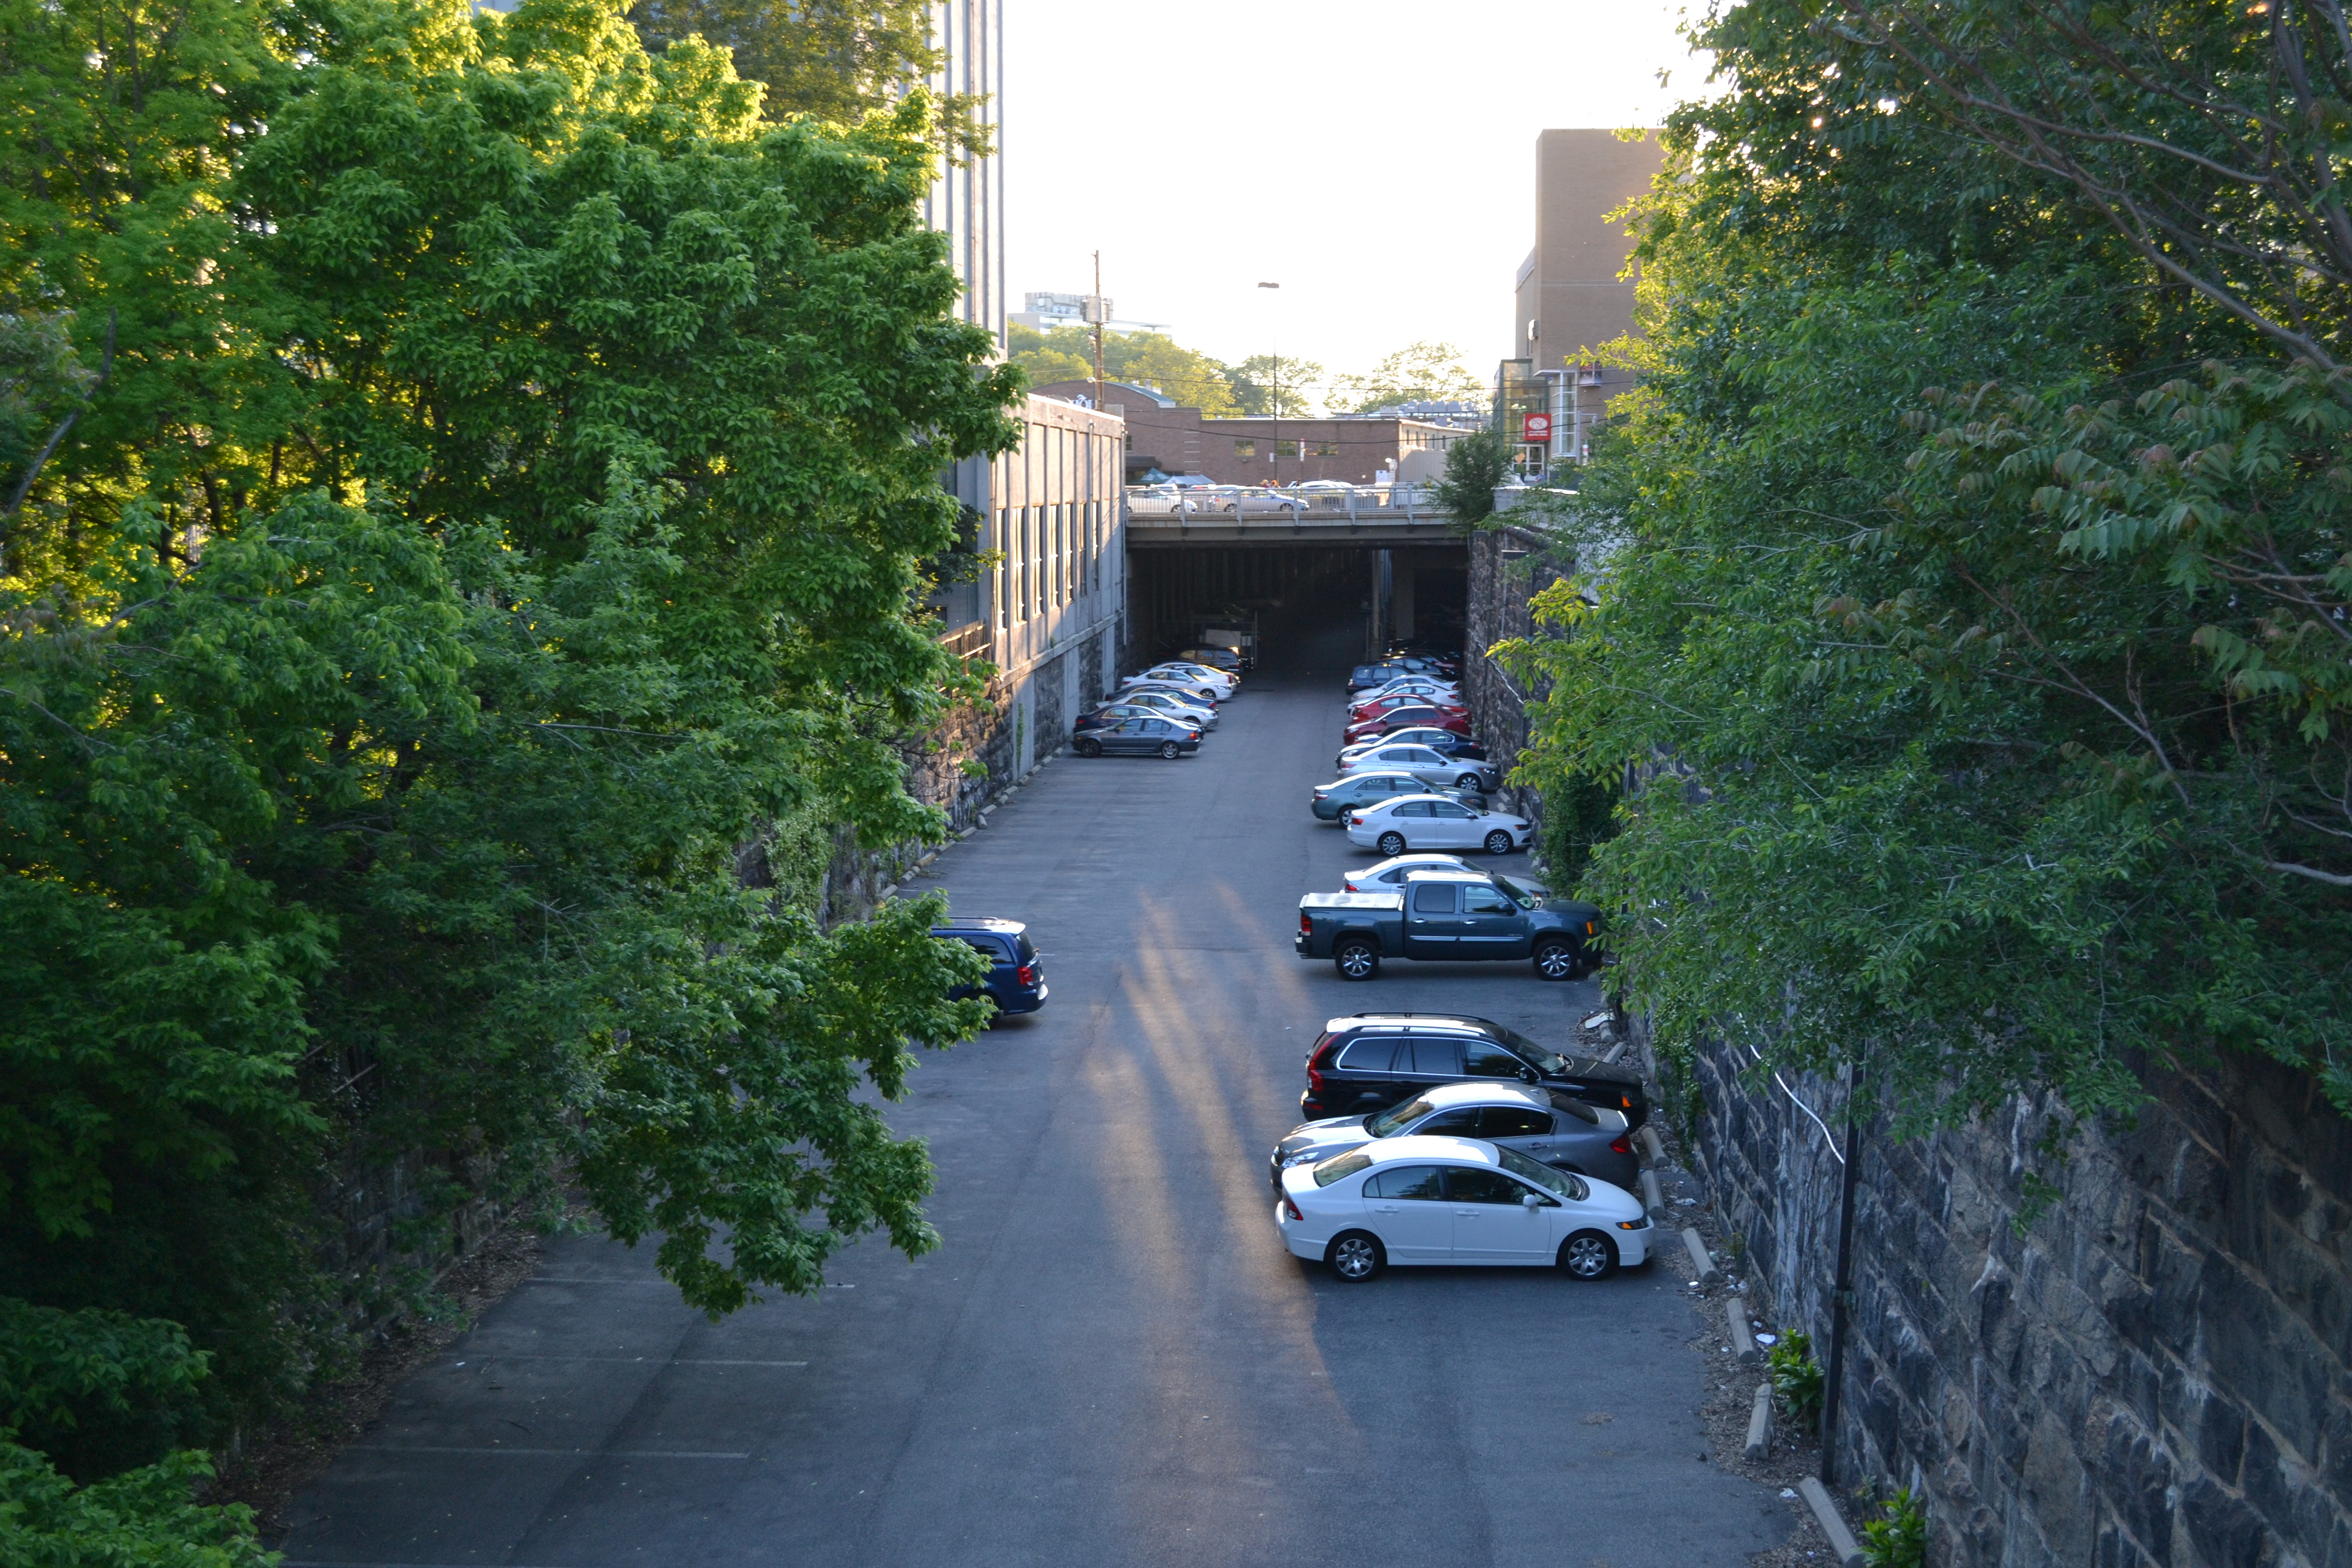 The former City Branch rail cut runs from Broad to 27th Street and portions are used for parking